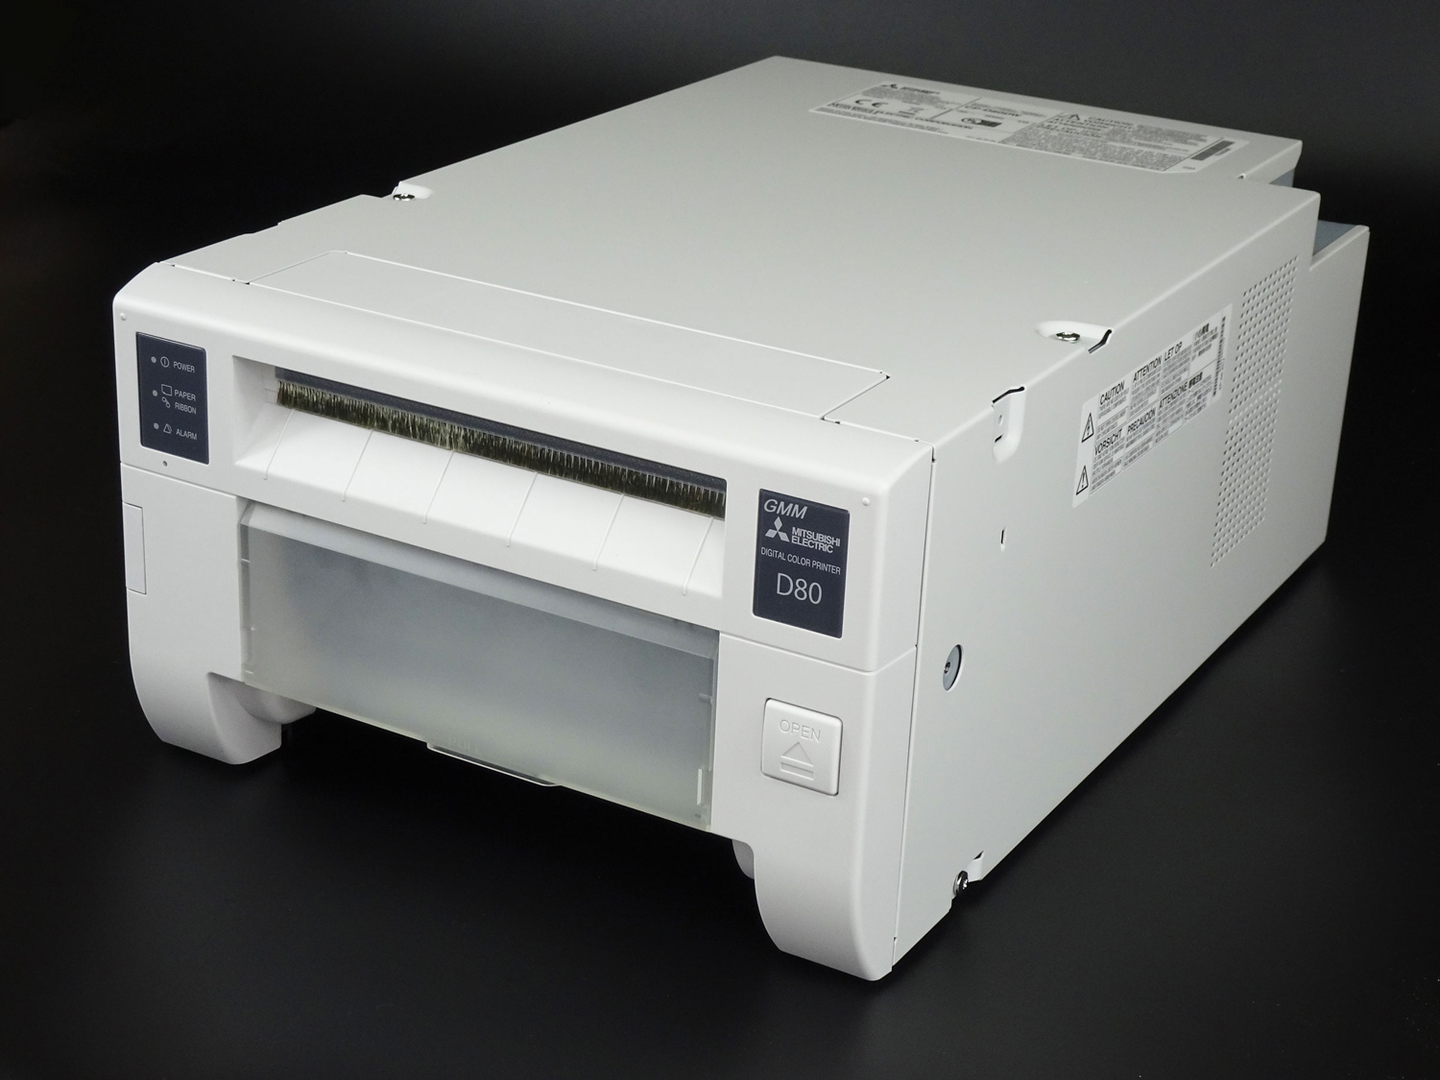 Mitsubishi Digital Color Printer CP-D80DW